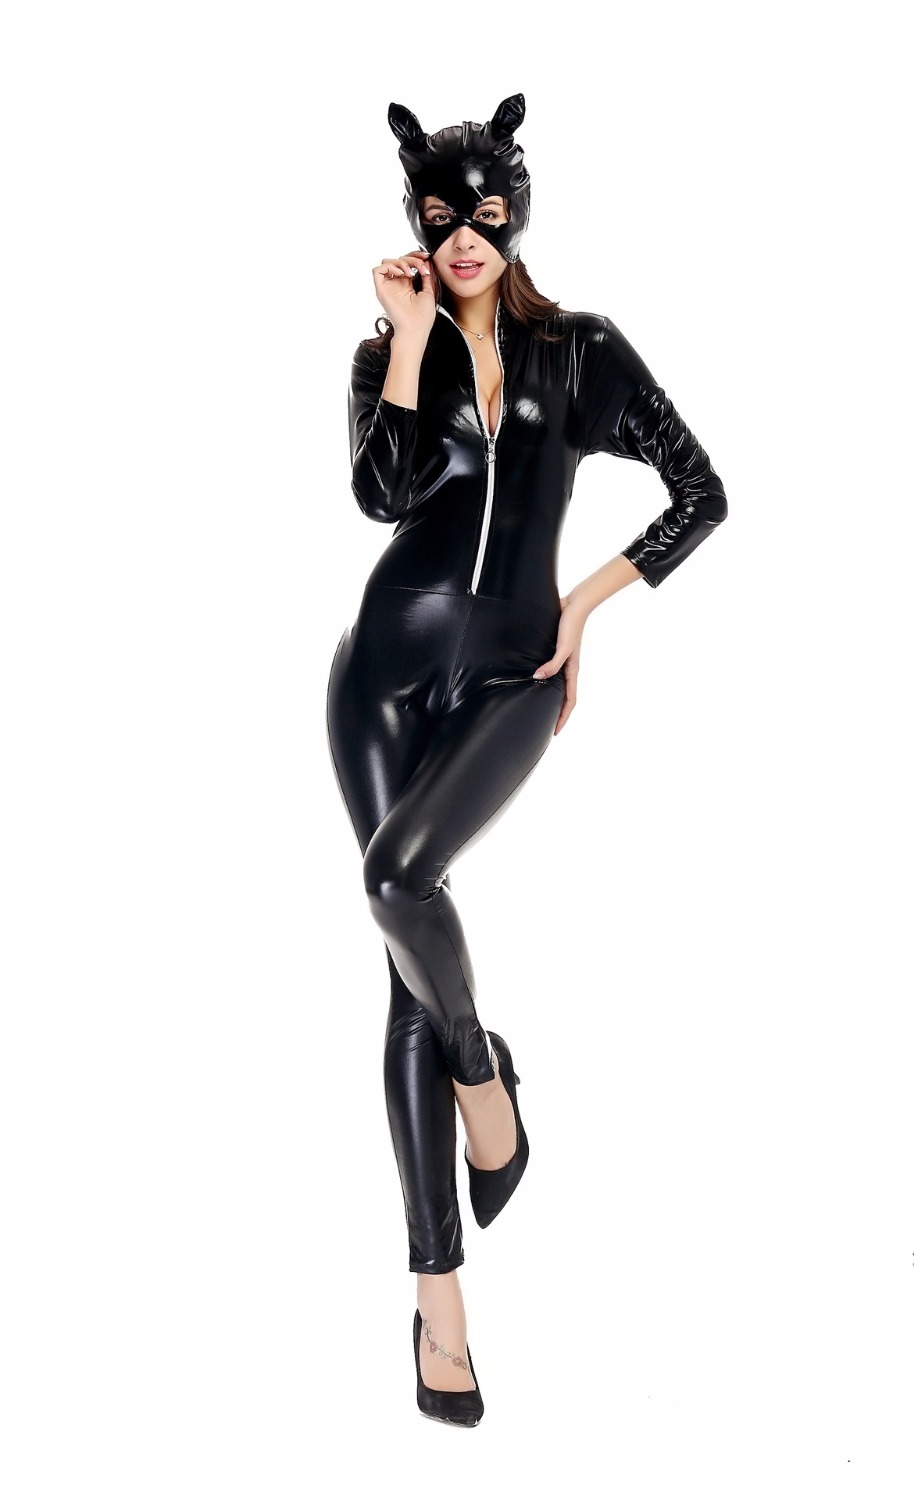 Walson NEW Arrival adult <font><b>Costume</b></font> Cat Women Leather Jumpsuit Night <font><b>Sexy</b></font> <font><b>Catwoman</b></font> Catsuit Black Cat Halloween <font><b>Costume</b></font> M-3XL image